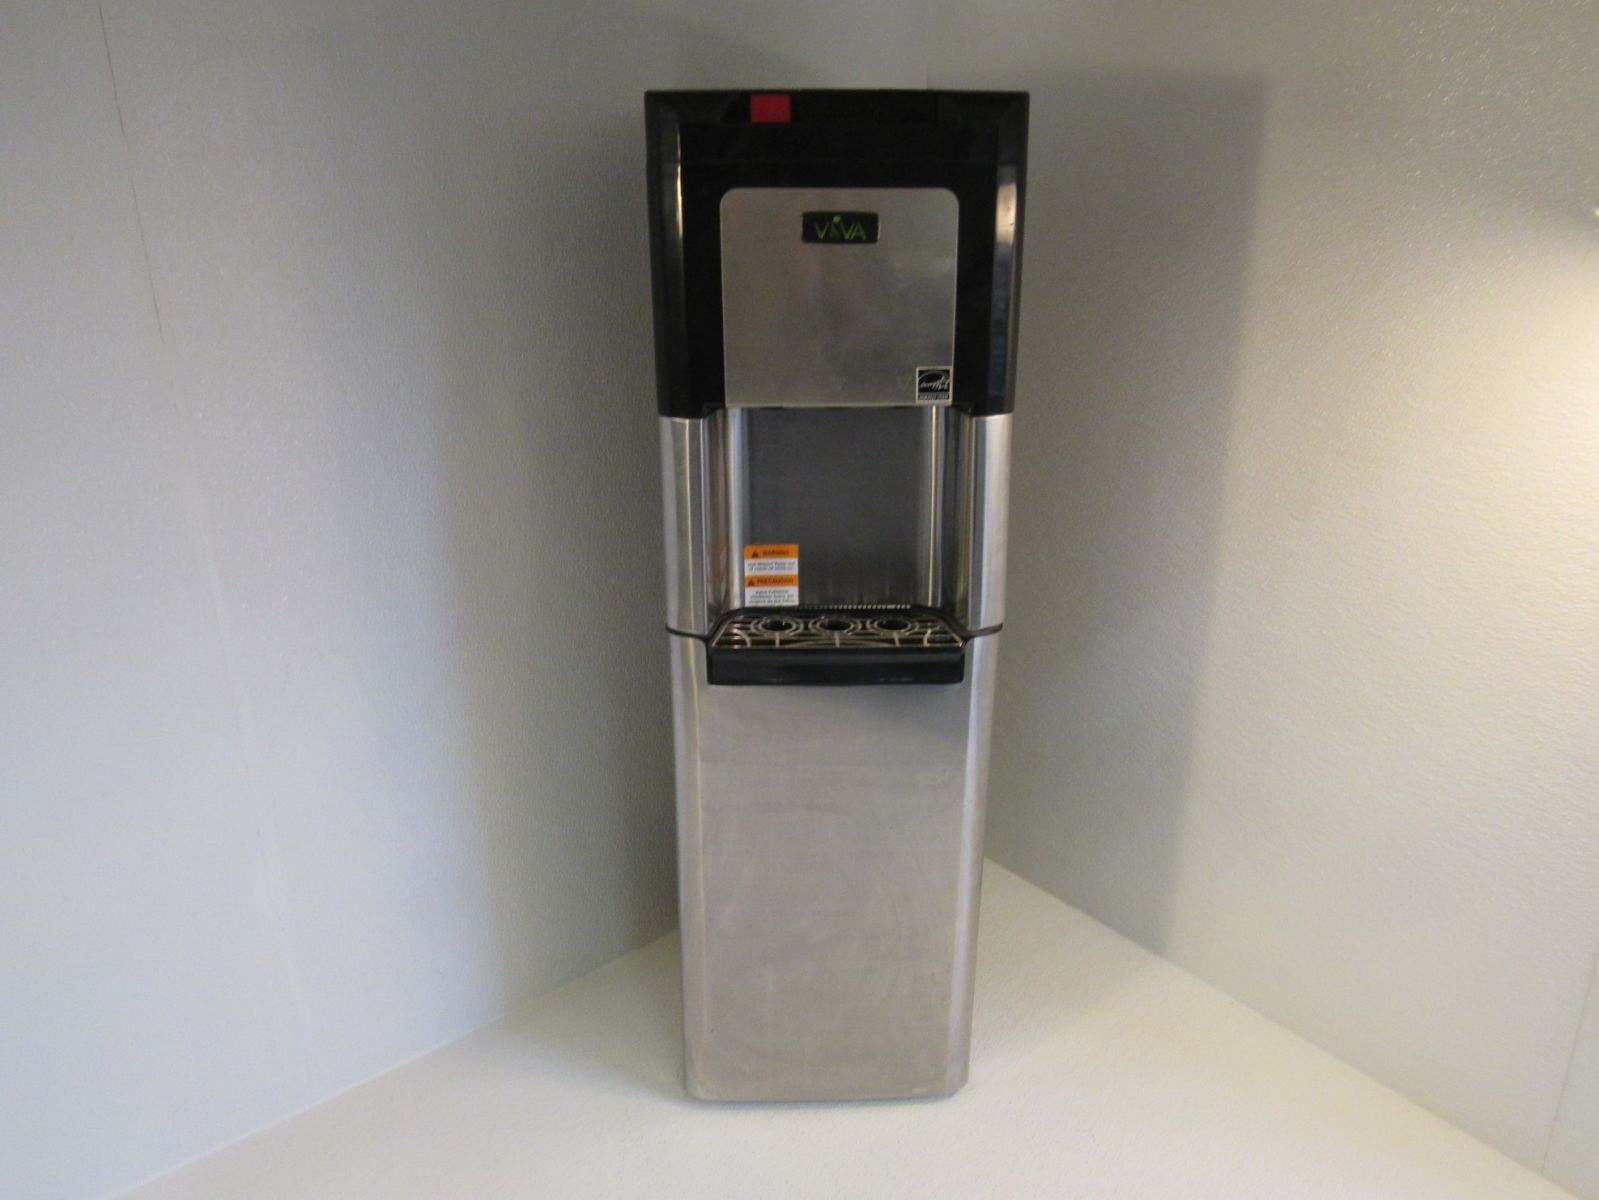 Electrotemp Viva Water Cooler & Heater Dispenser Front Load 8LIECH-SSF-COSUS